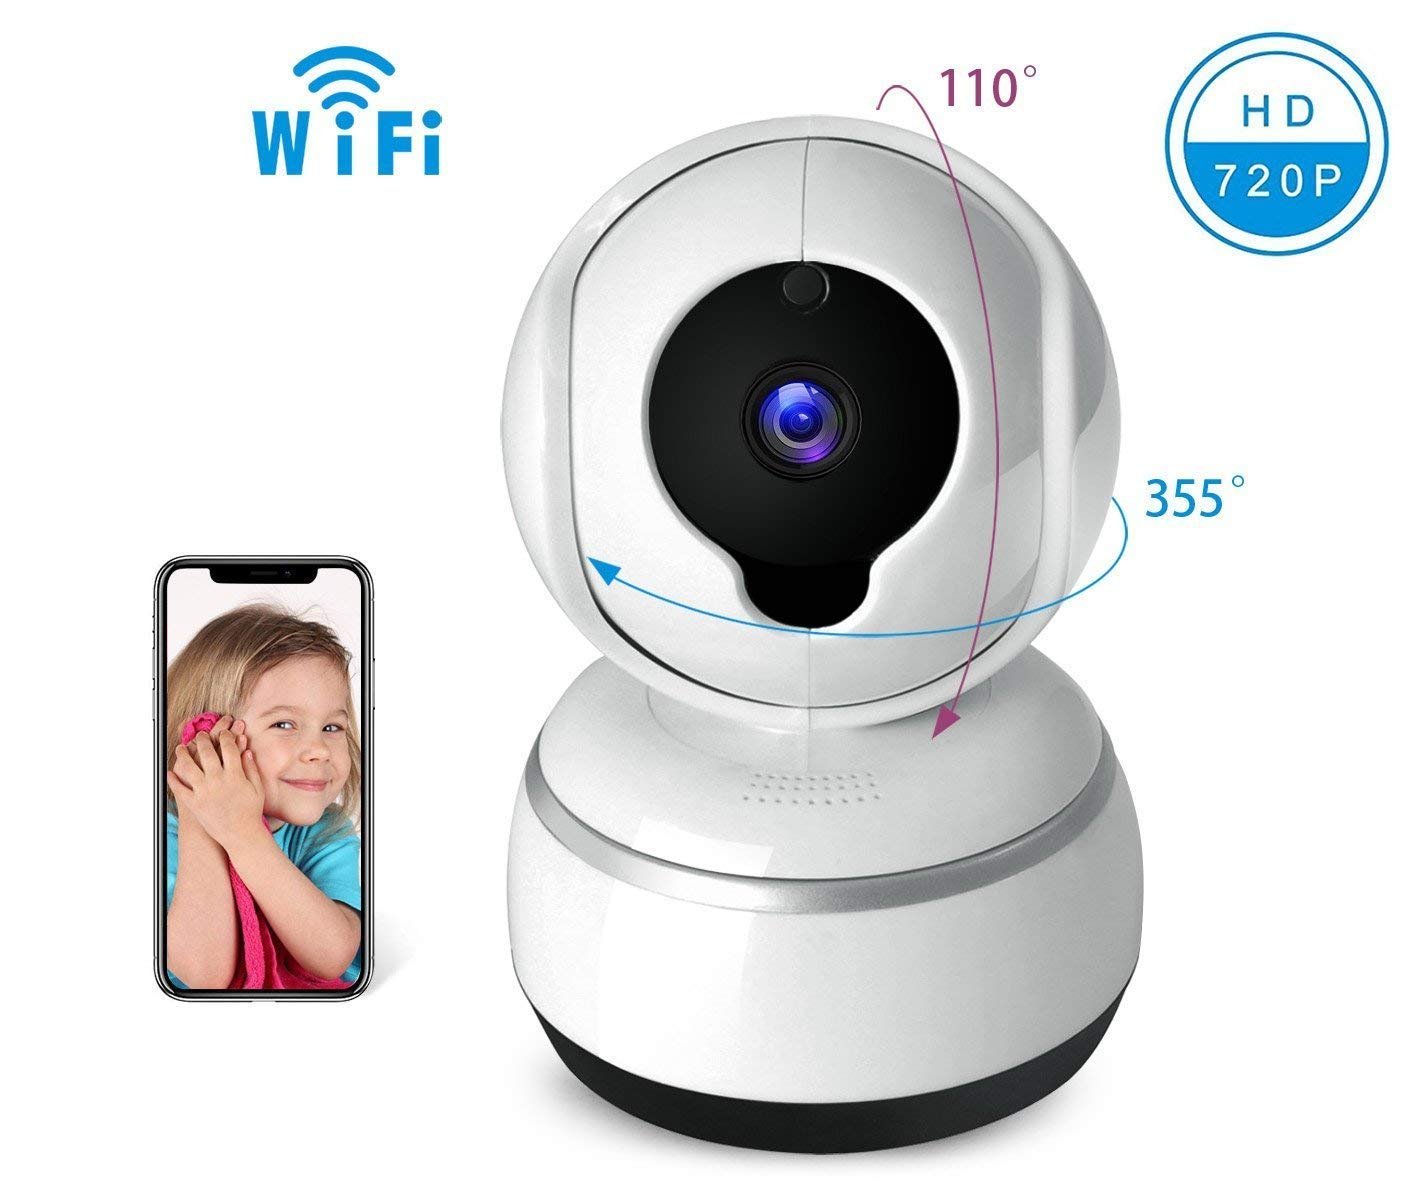 Baby Camera IOS/Android APP Remote Control Camera, 2.4GHz WIFI Camera, 720P HD IP Camera, Two-Way Voice Intercom, Move Alarm, Infrared Night Vision Function, Pan/Tilt/Zoom with Home Security System